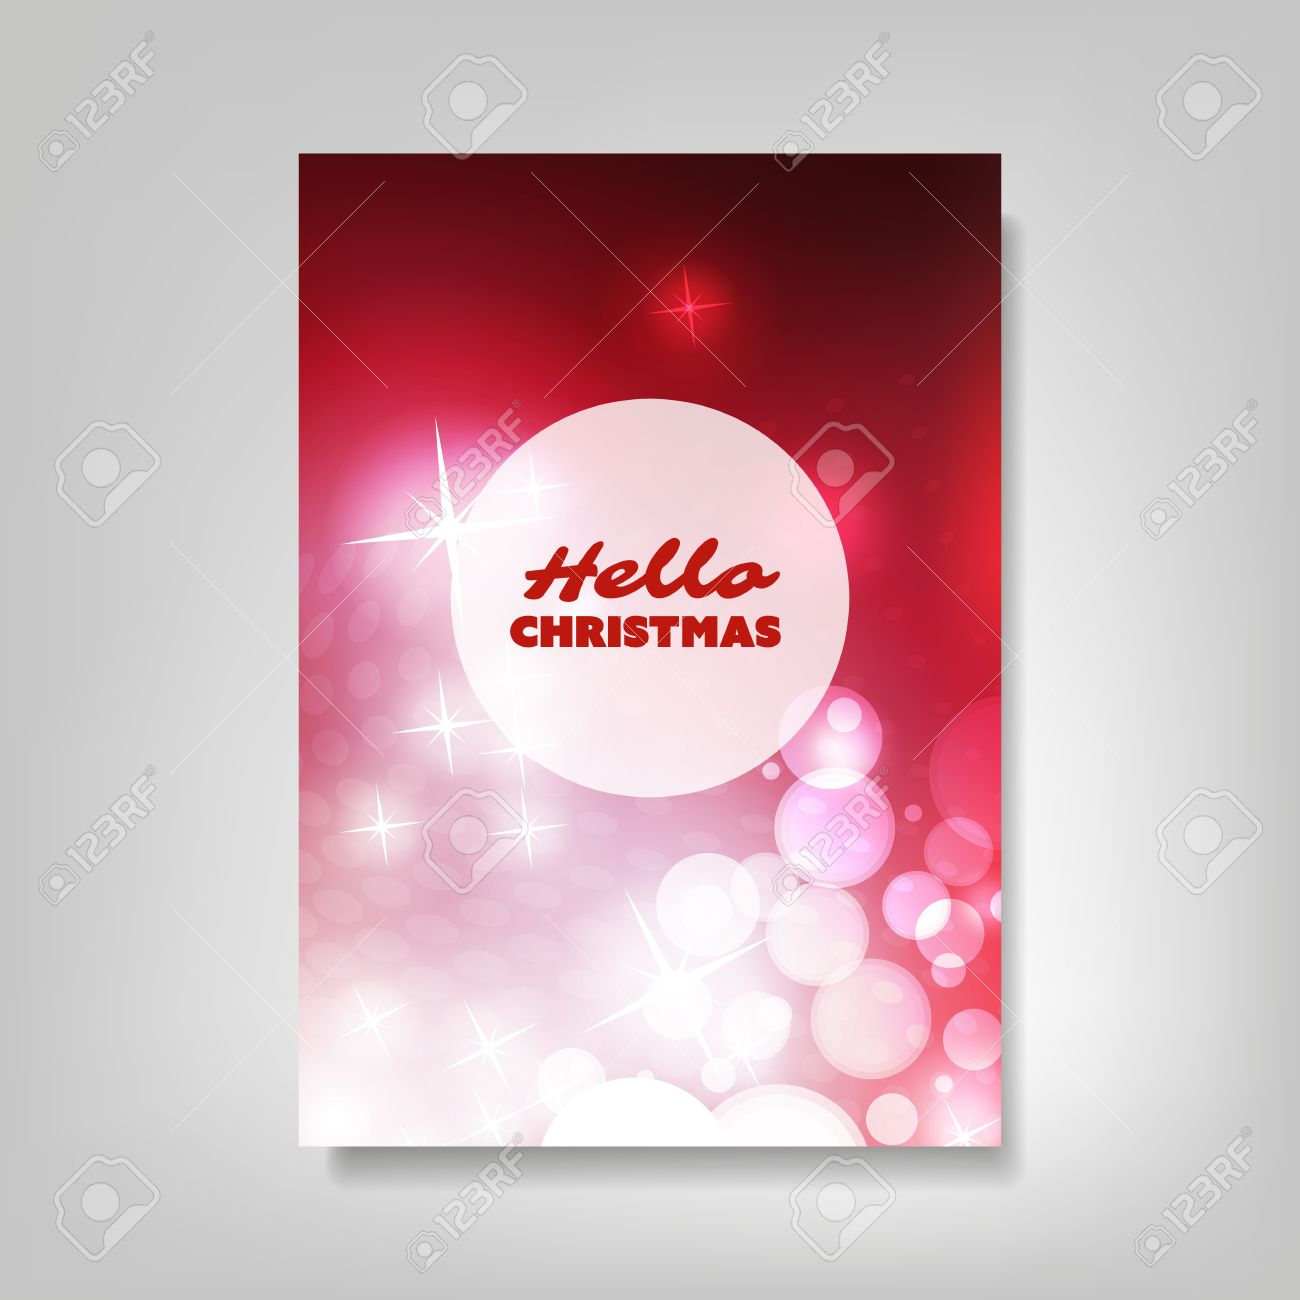 hello christmas flyer card or cover design sparkling hello christmas flyer card or cover design sparkling pattern background corporate identity